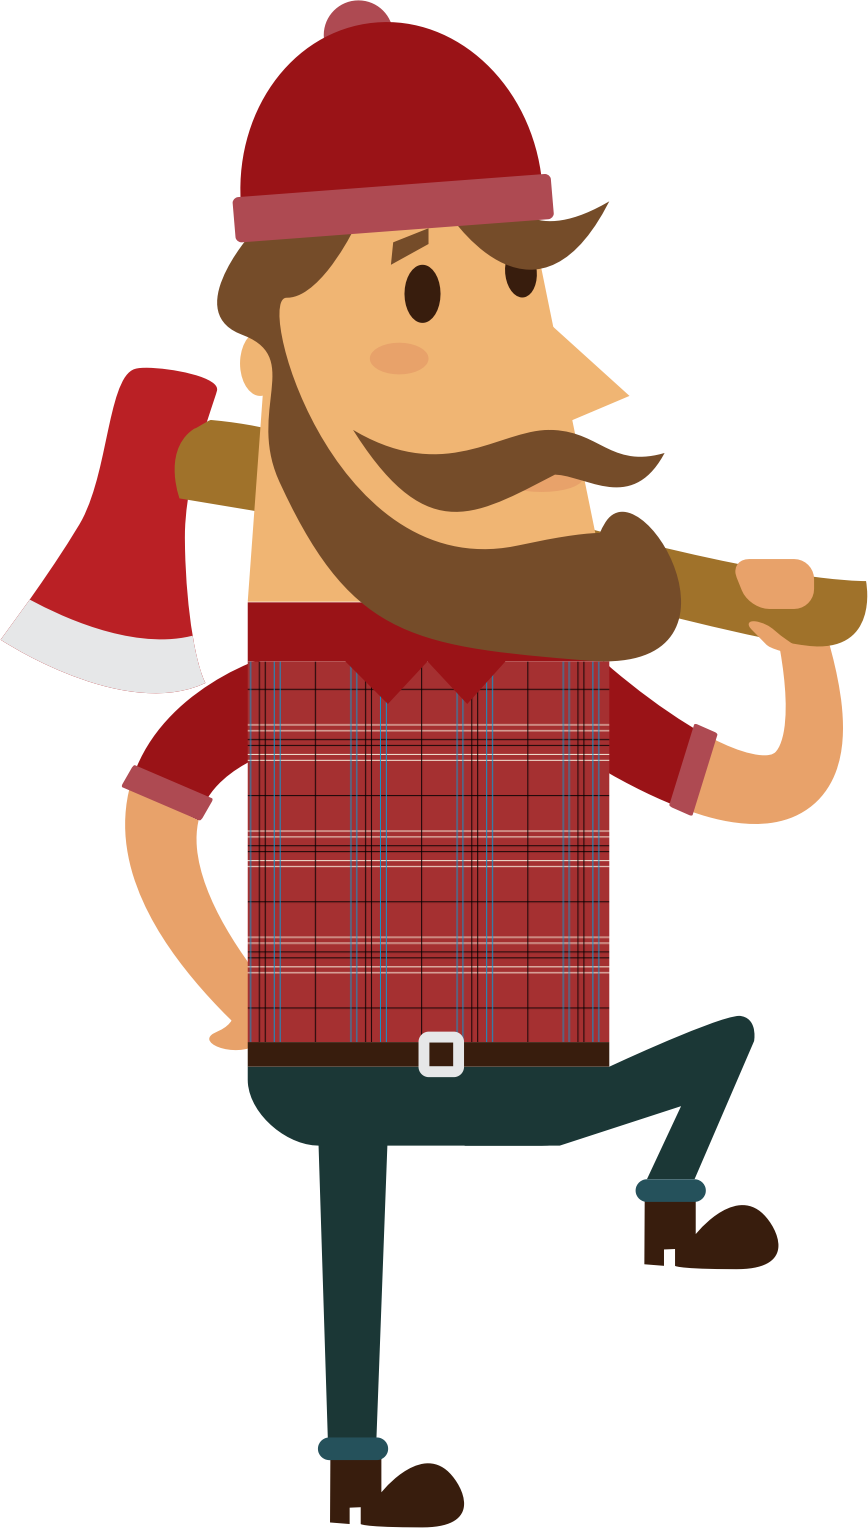 Lumberjack vector clipart images gallery for free download.